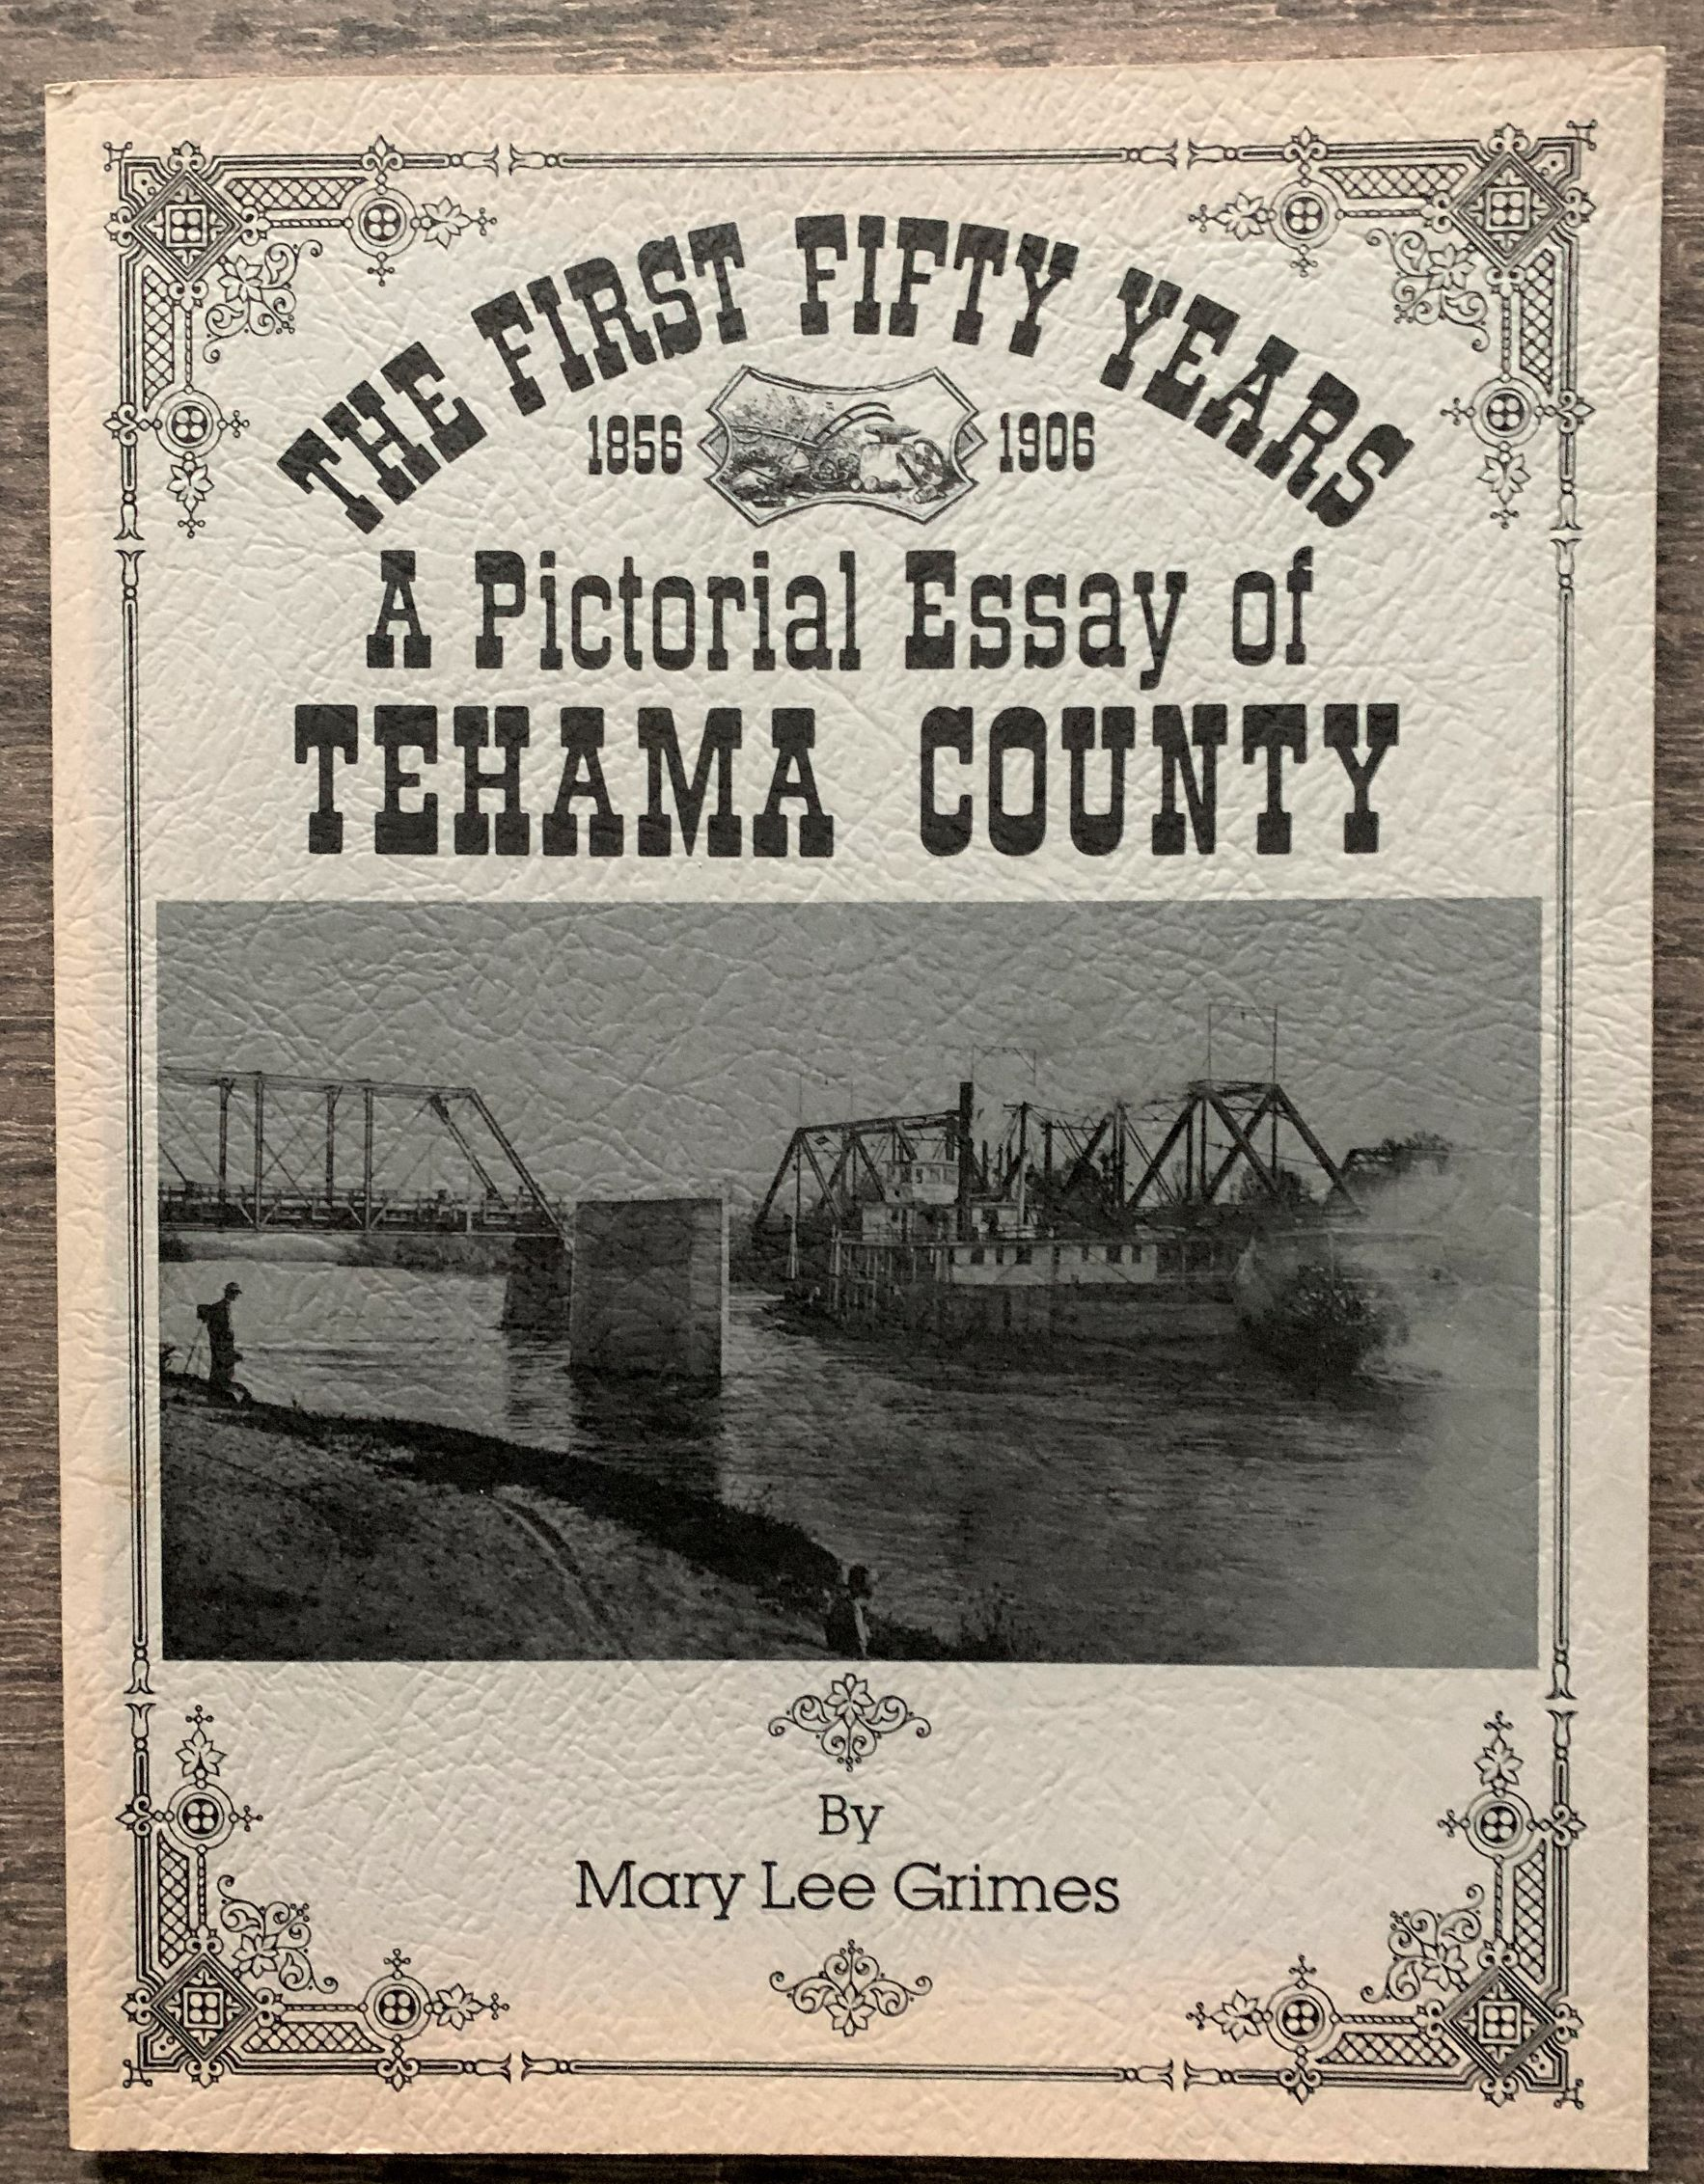 Image for The First Fifty Years, 1856-1906, A Pictorial Essay of Tehama County.